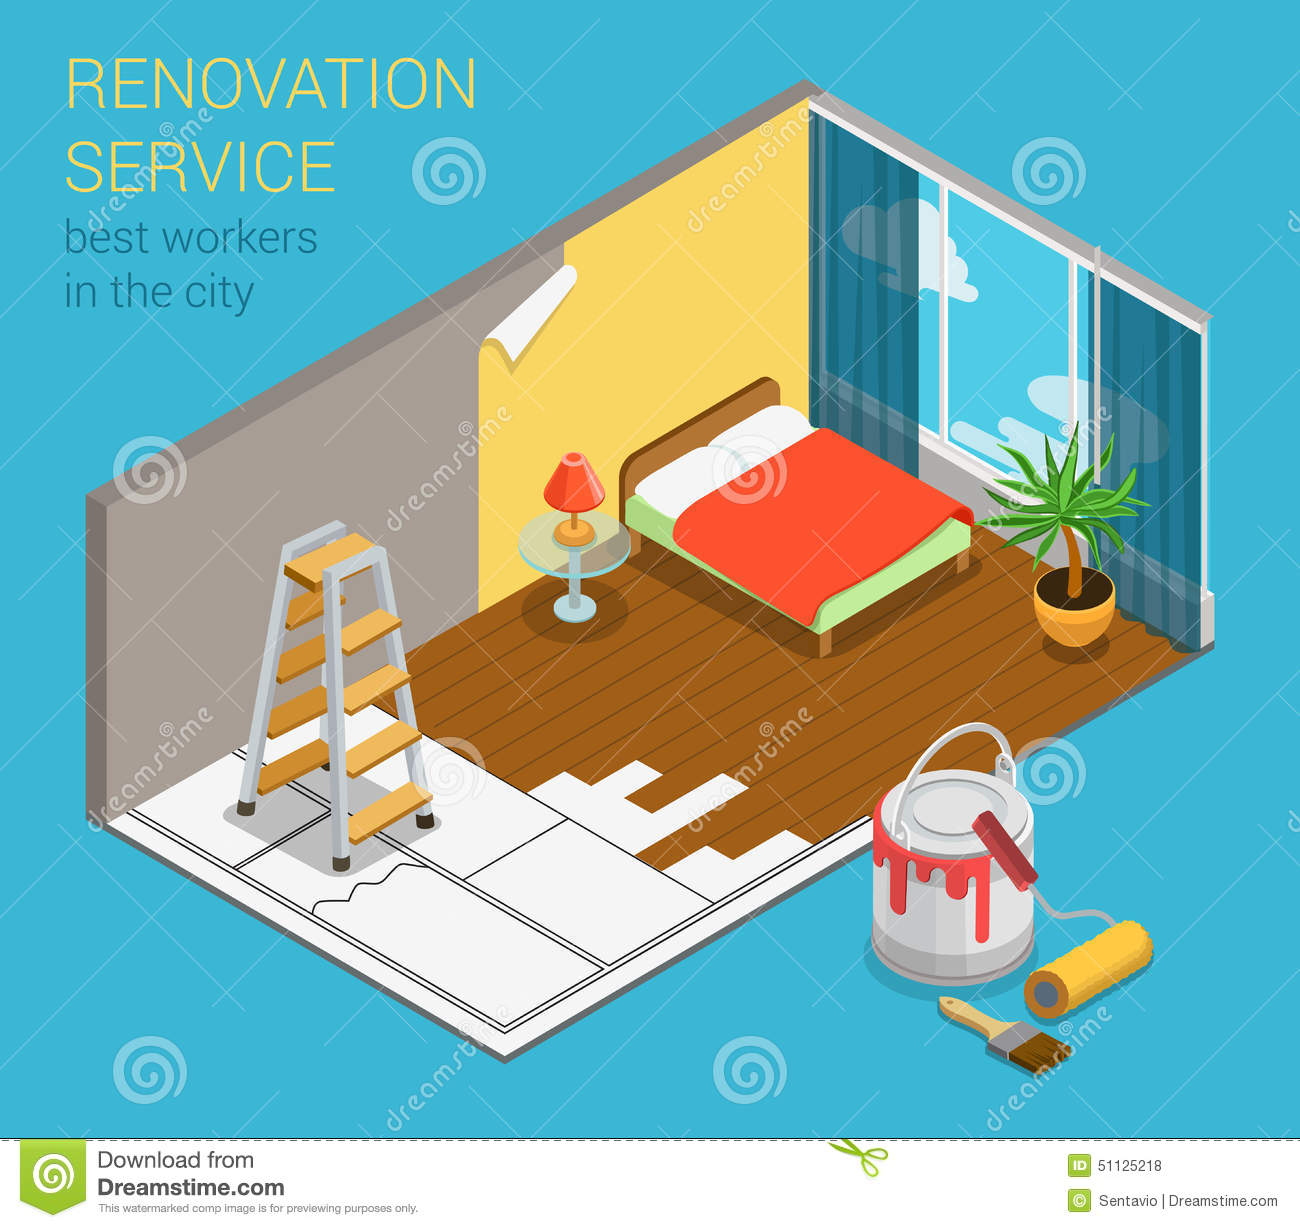 Renovation can also be pleseare 5